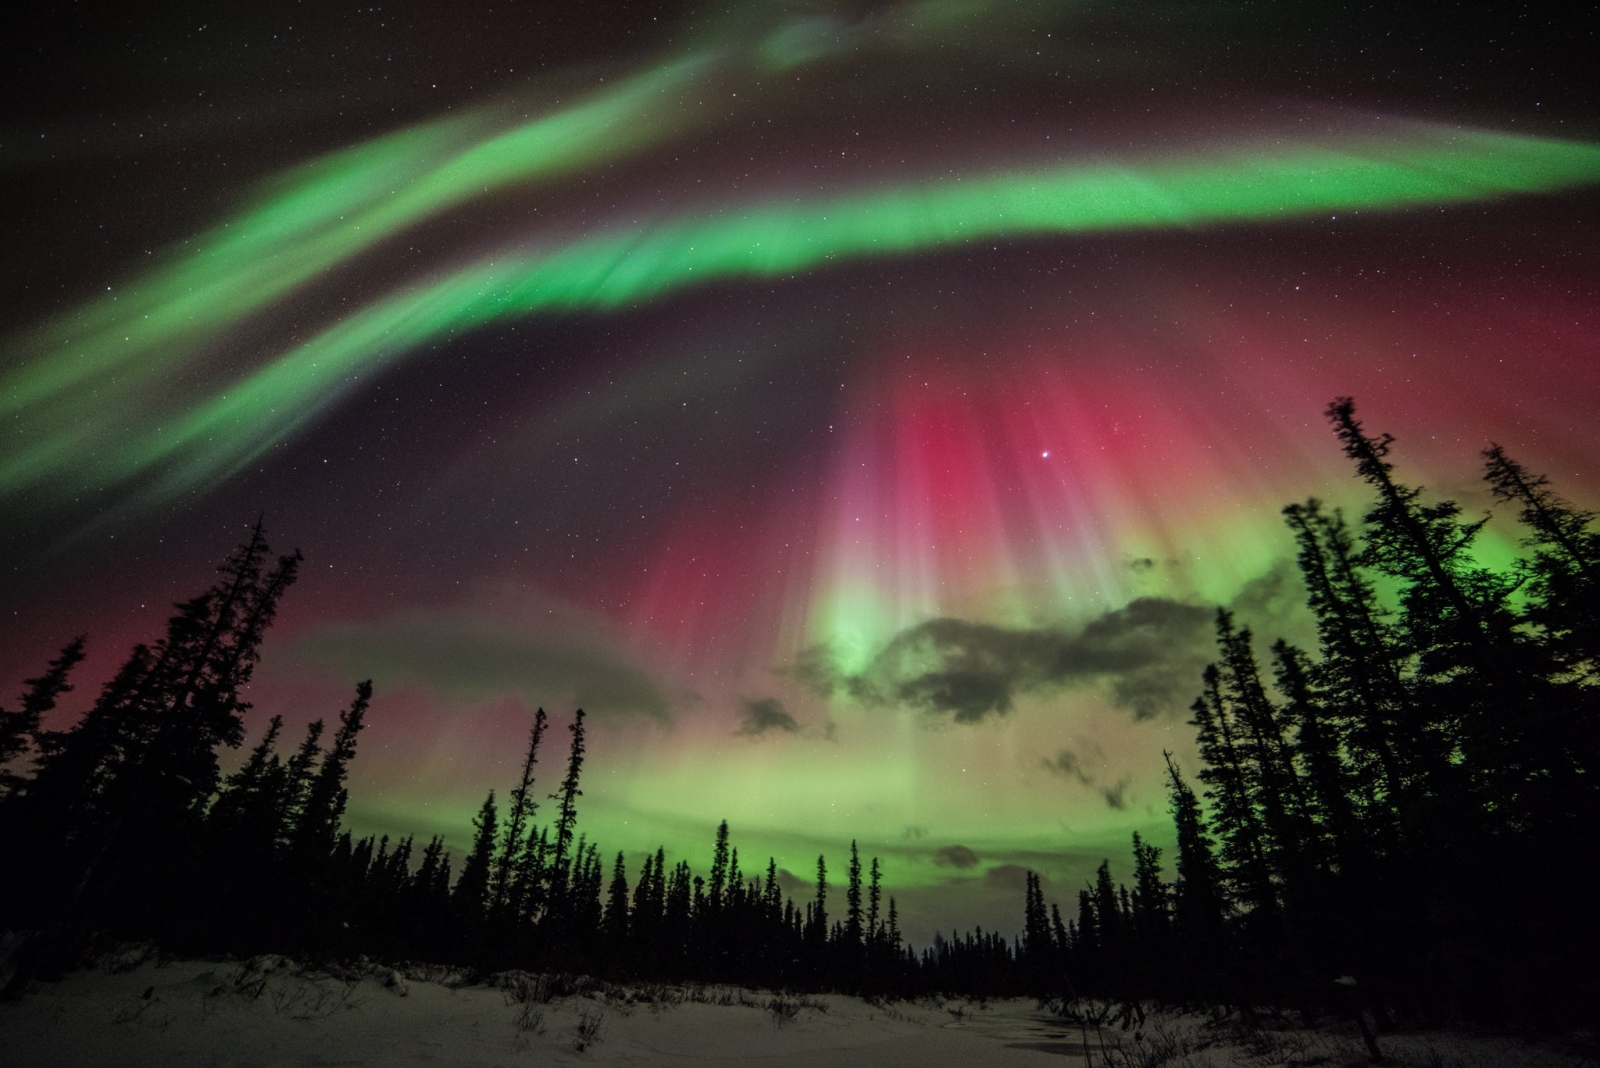 Aurora Borealis: Photos Of Northern Lights Over Alaska Following  Geomagnetic Storm Great Ideas